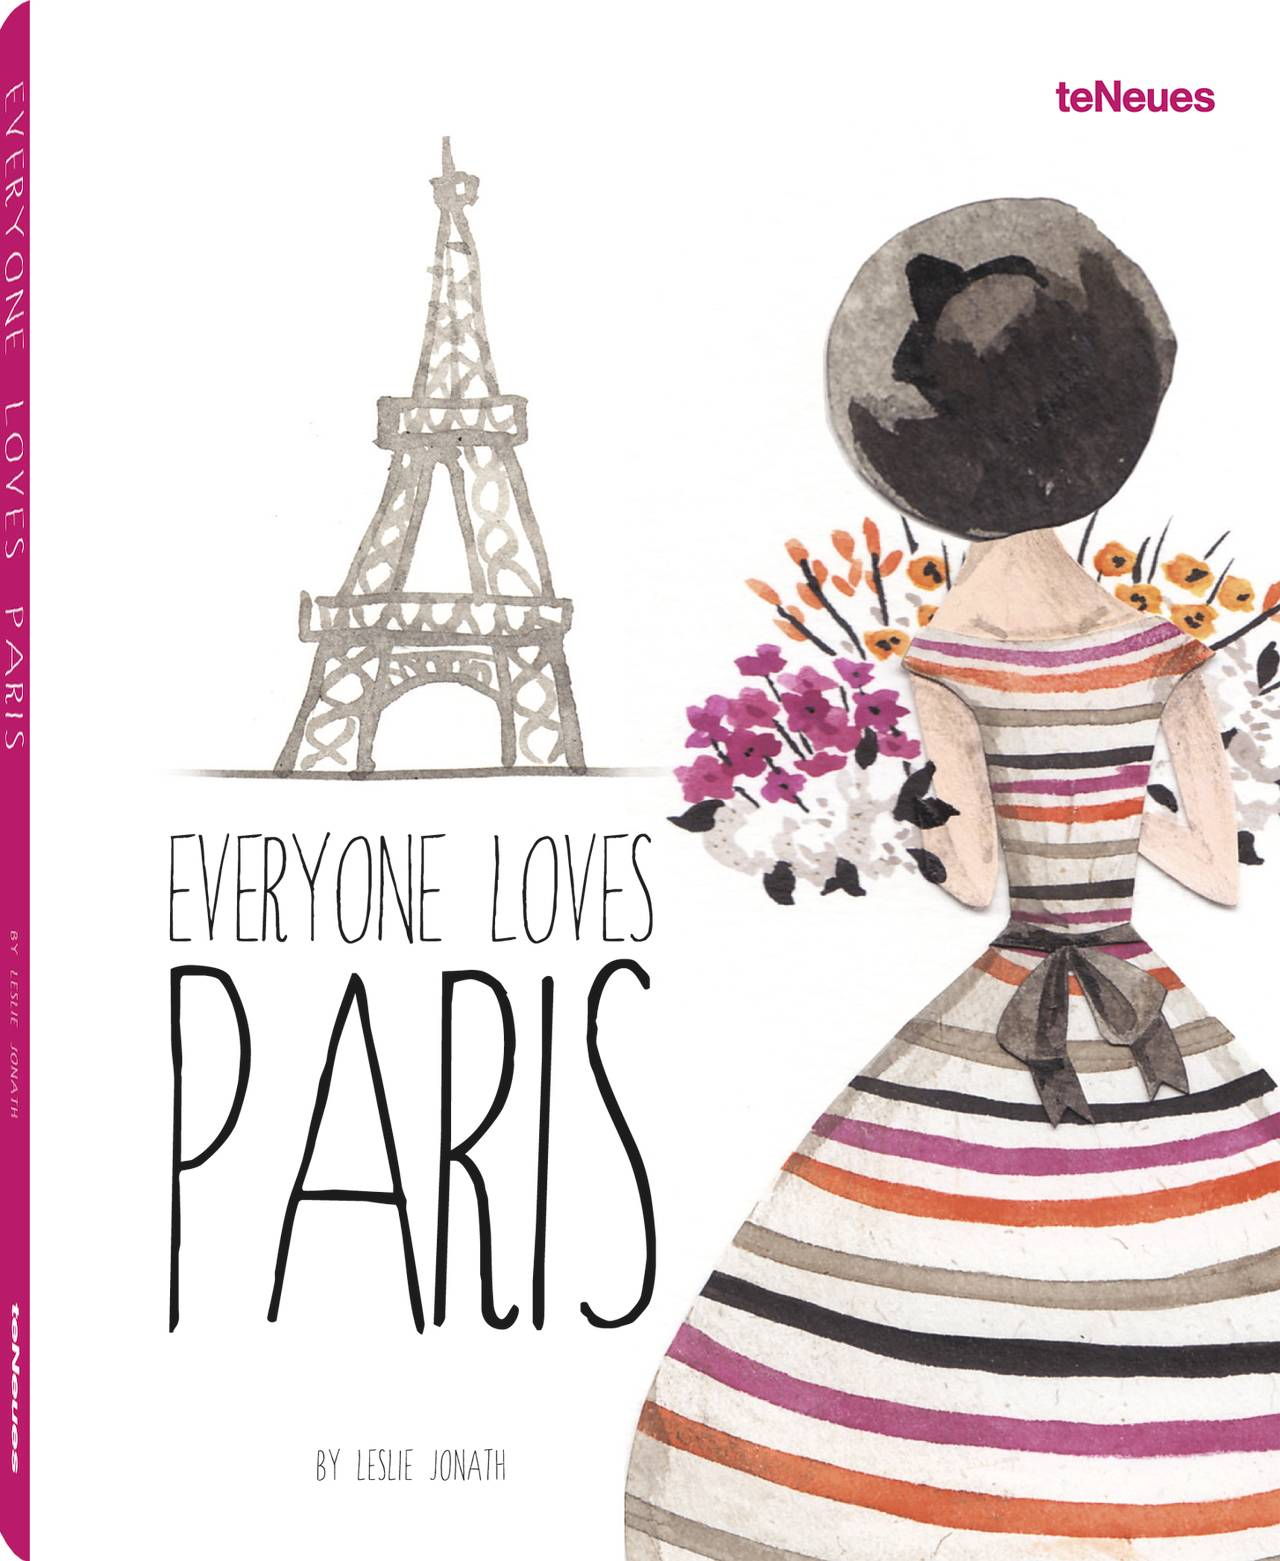 © Everyone Loves Paris, edited by Leslie Jonath, published by teNeues, www.teneues.com. © Emma Block. All rights reserved.